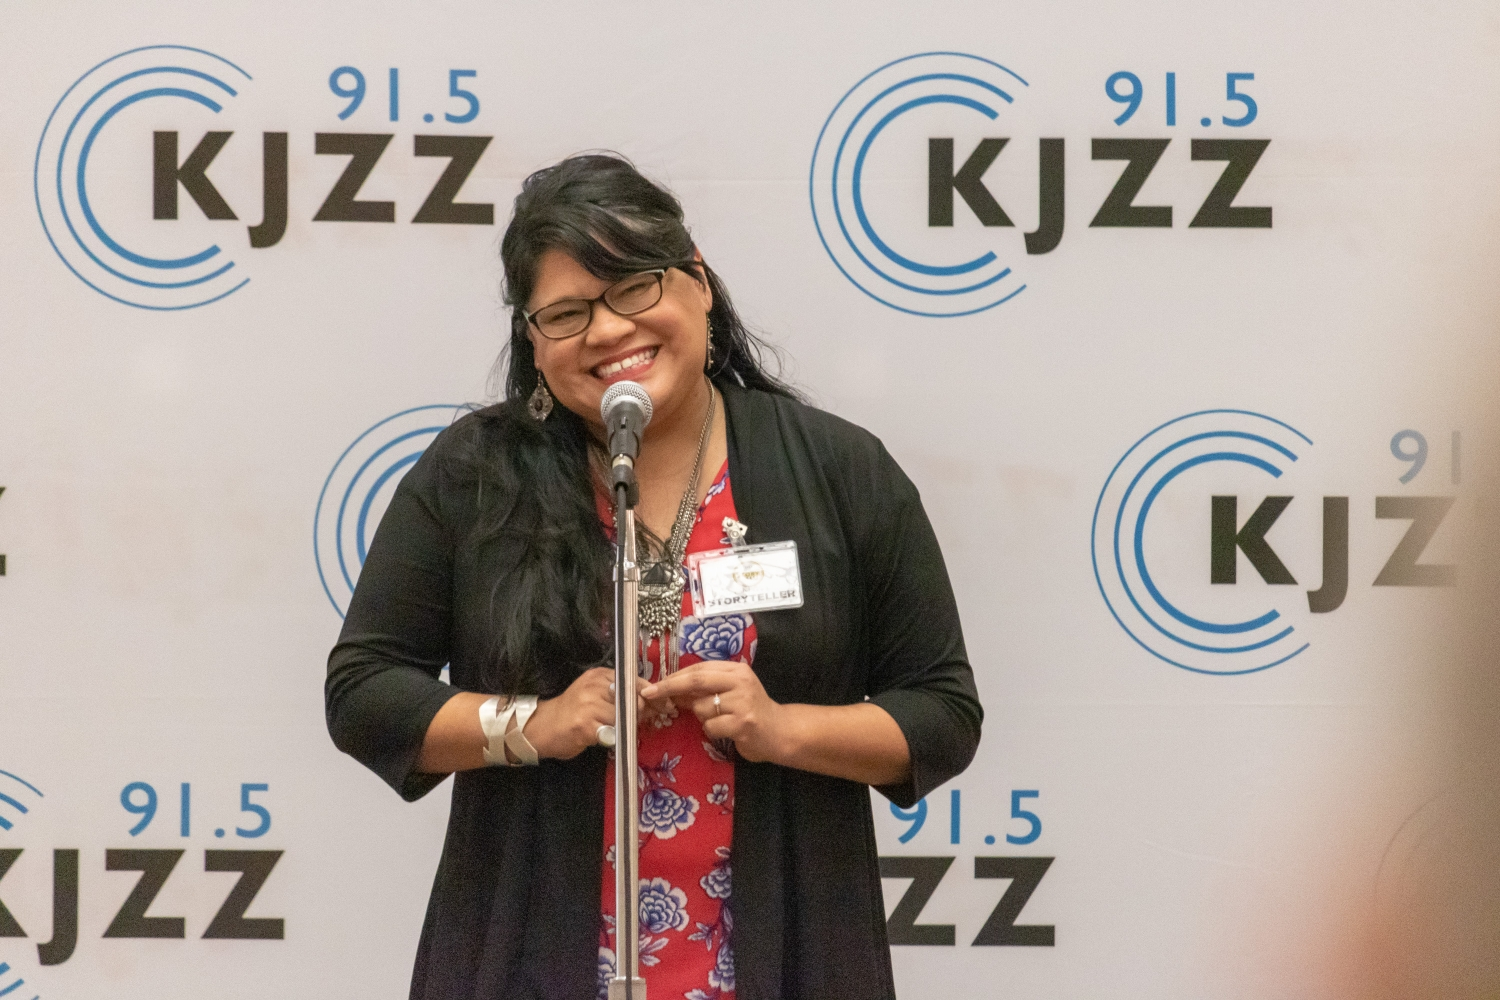 woman red floral top and black jacket,  black hair and glasses smiling in front of a microphone